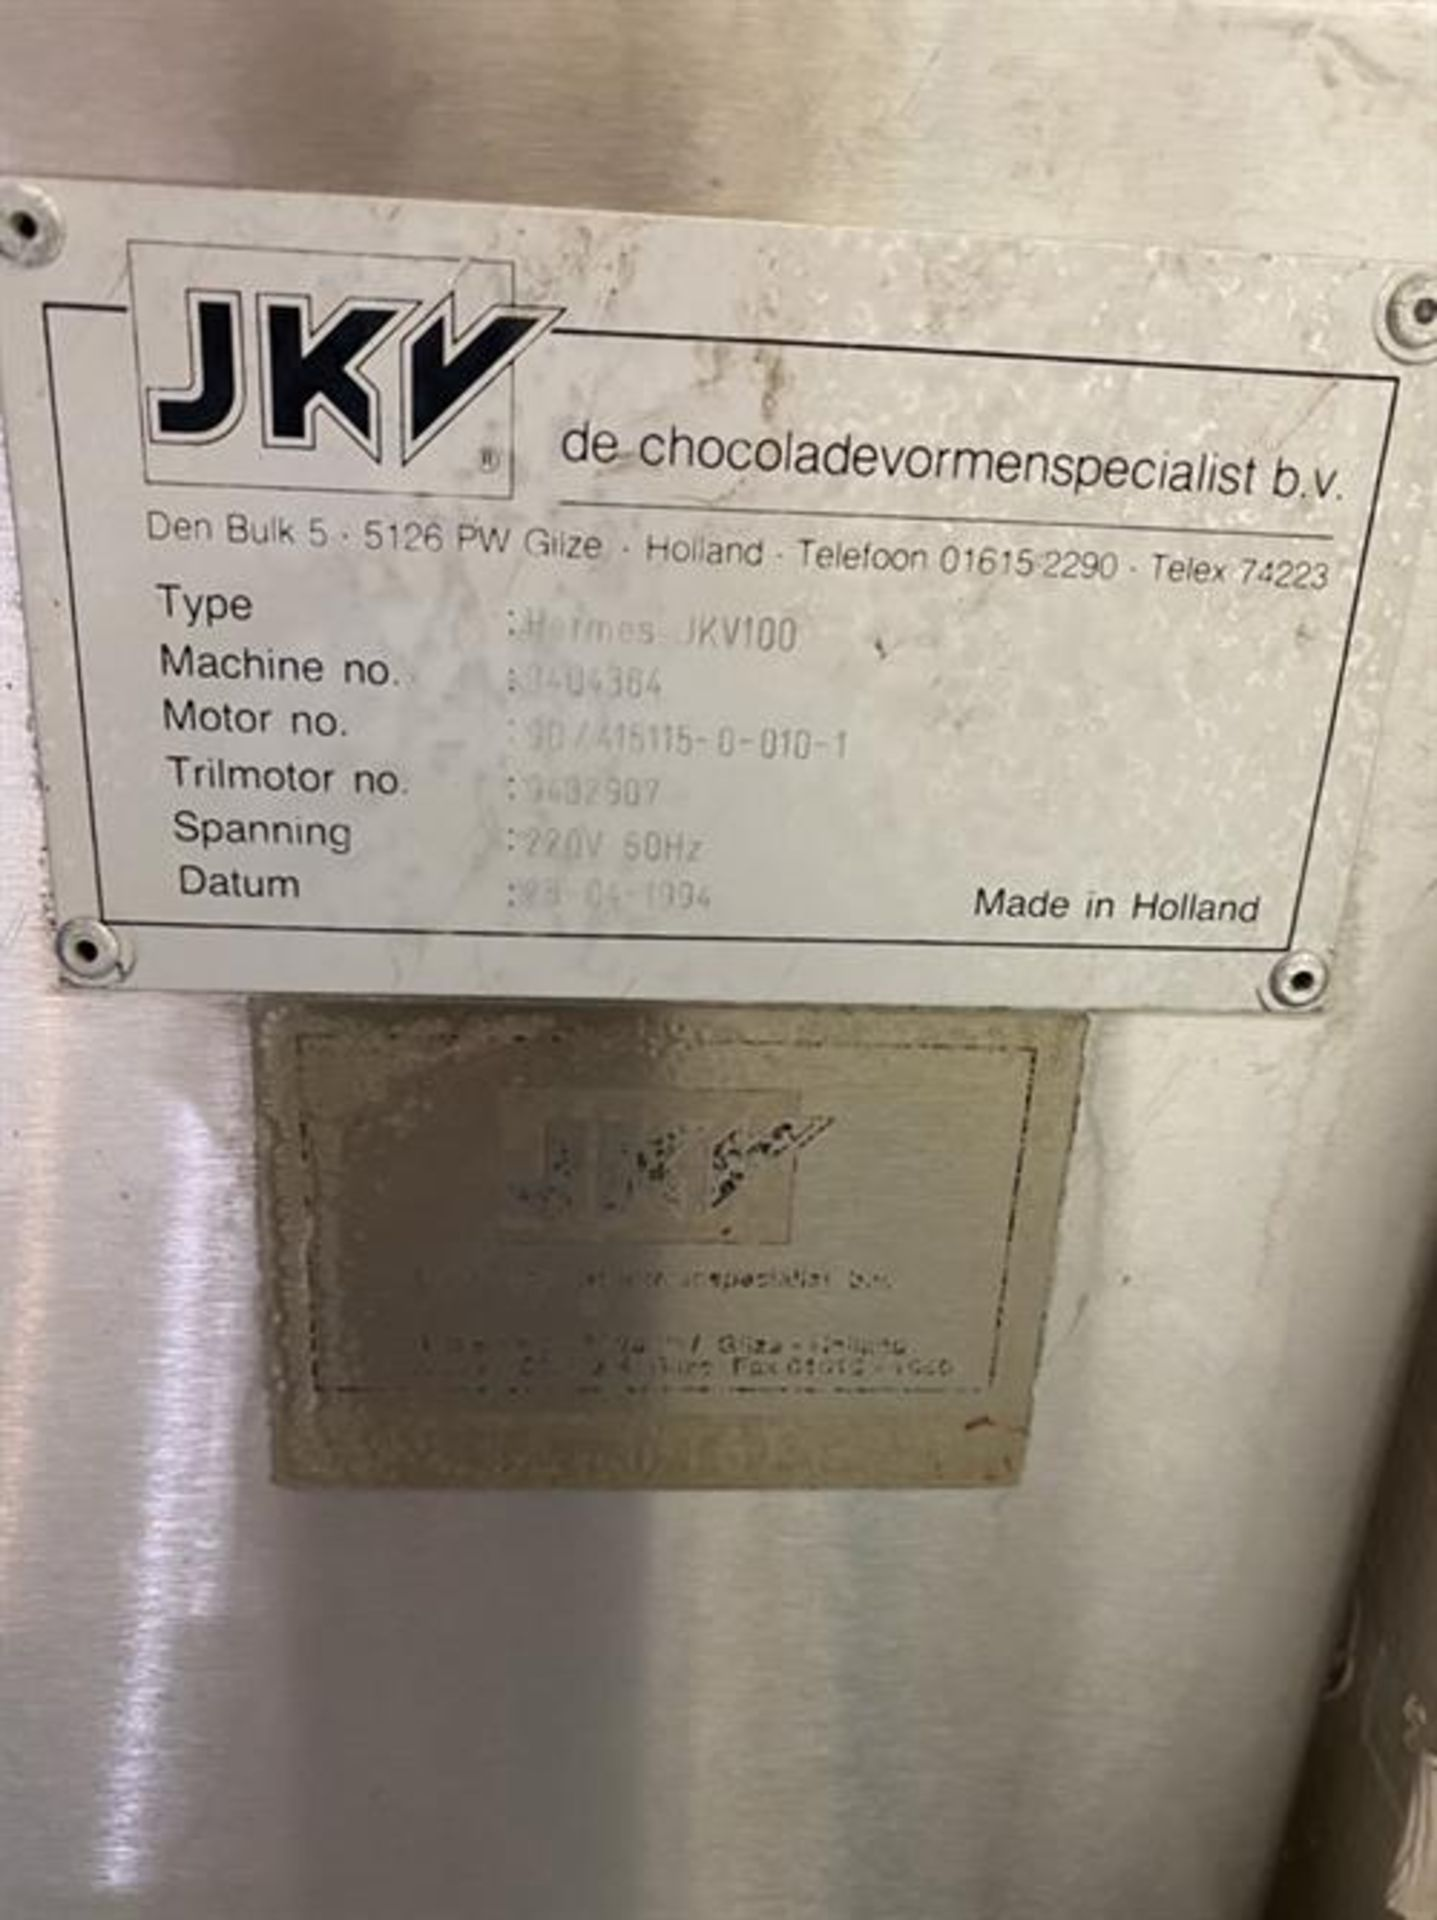 JKV Model 100 Tempering Melter - Serial number 9404364 - Built new in 1994 - 100kg batch - Image 3 of 3